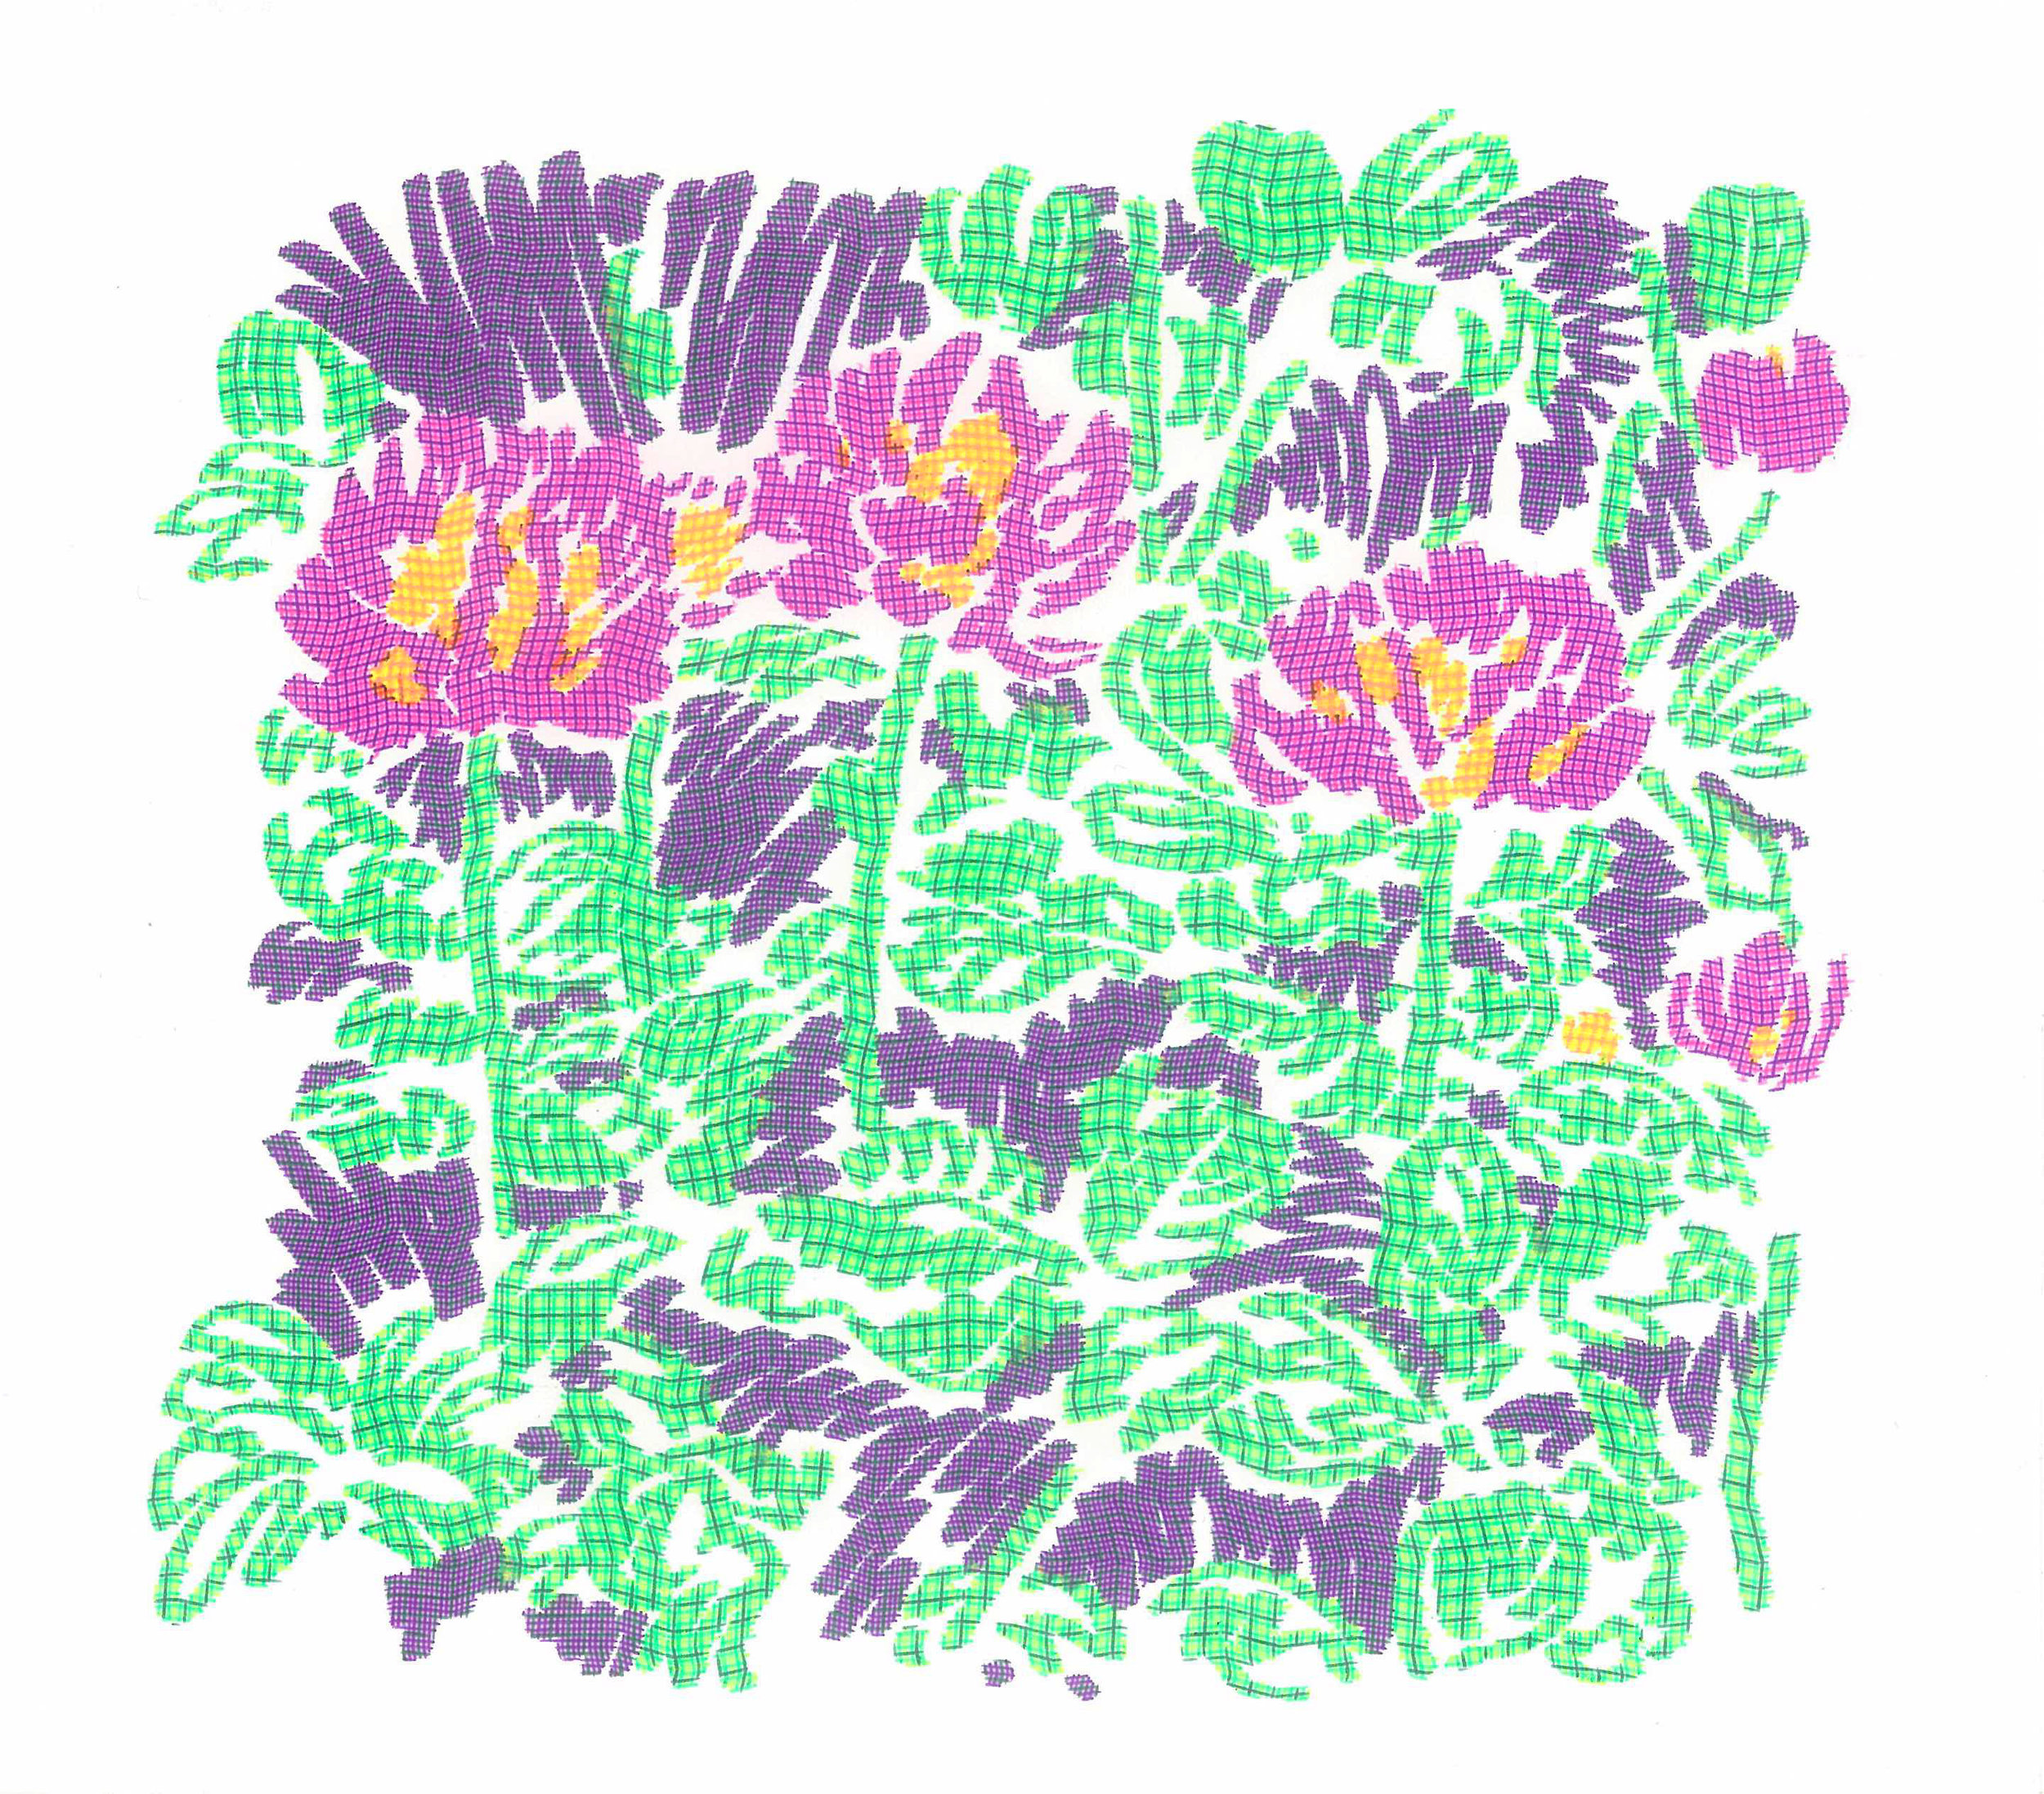 Untitled (Clovers)